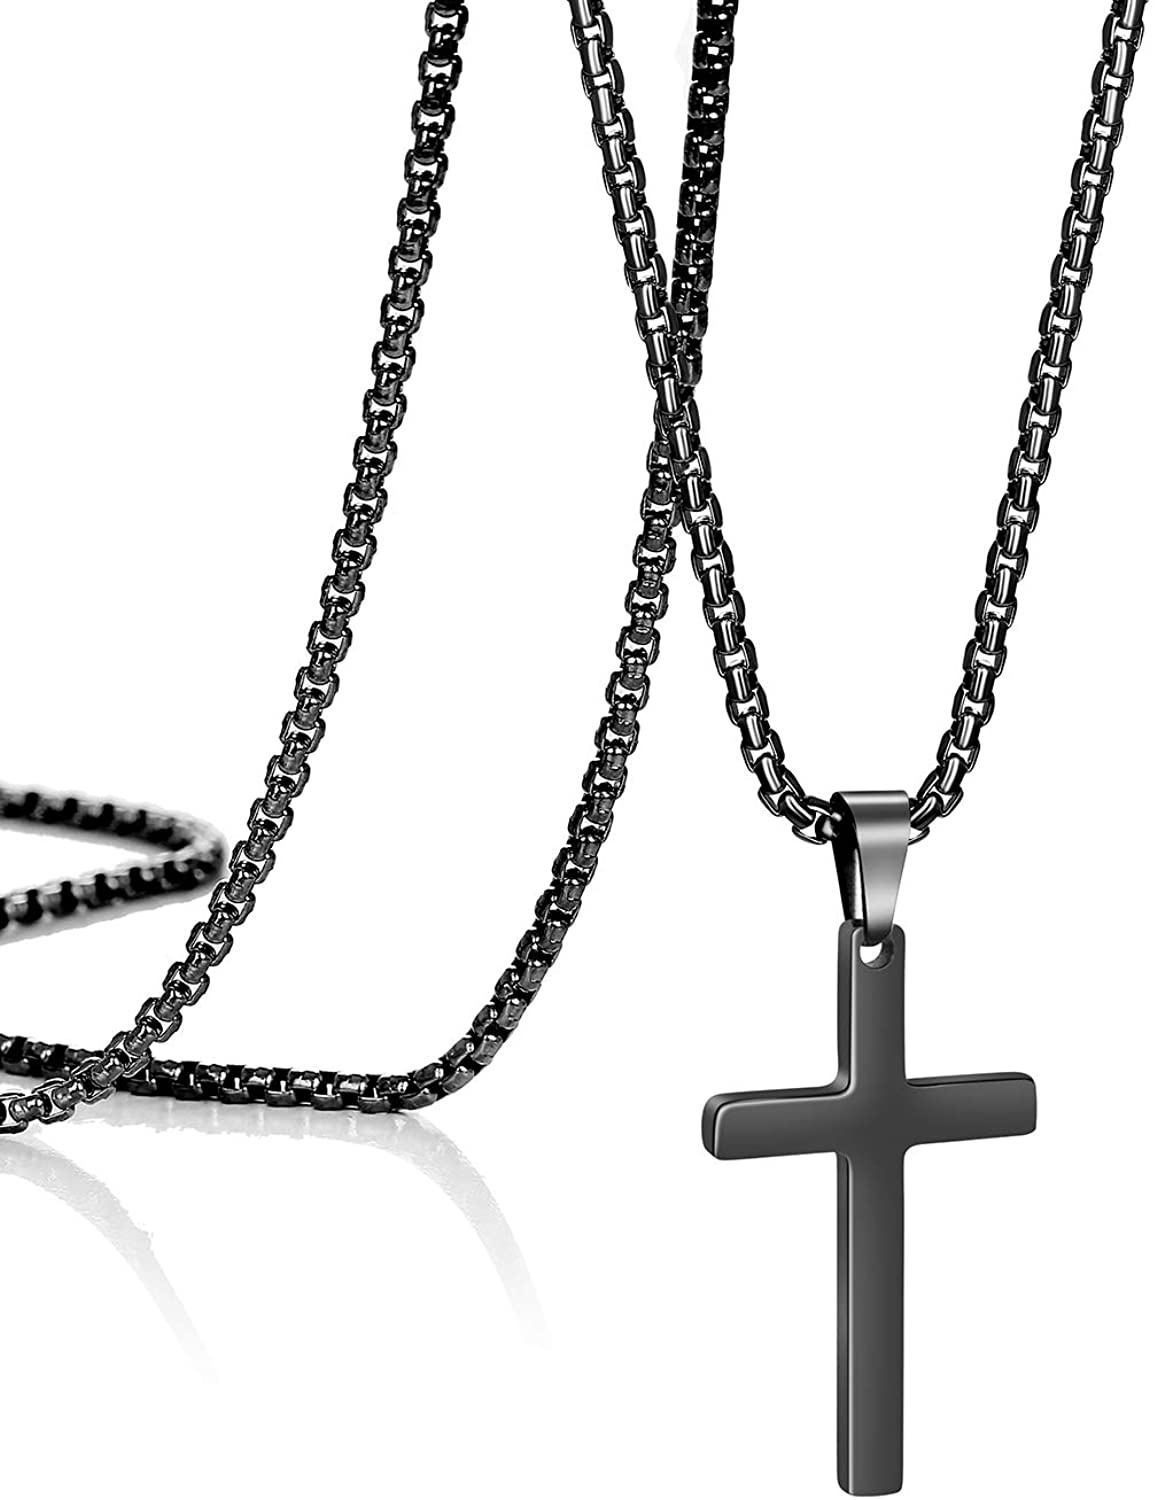 Joycuff Cross Pendant Necklace for Mens Women Cute Danty Christian Faith Necklaces Jewelry Gifts for Girls Men with Box Chain 16 18 20 22 24 Inches